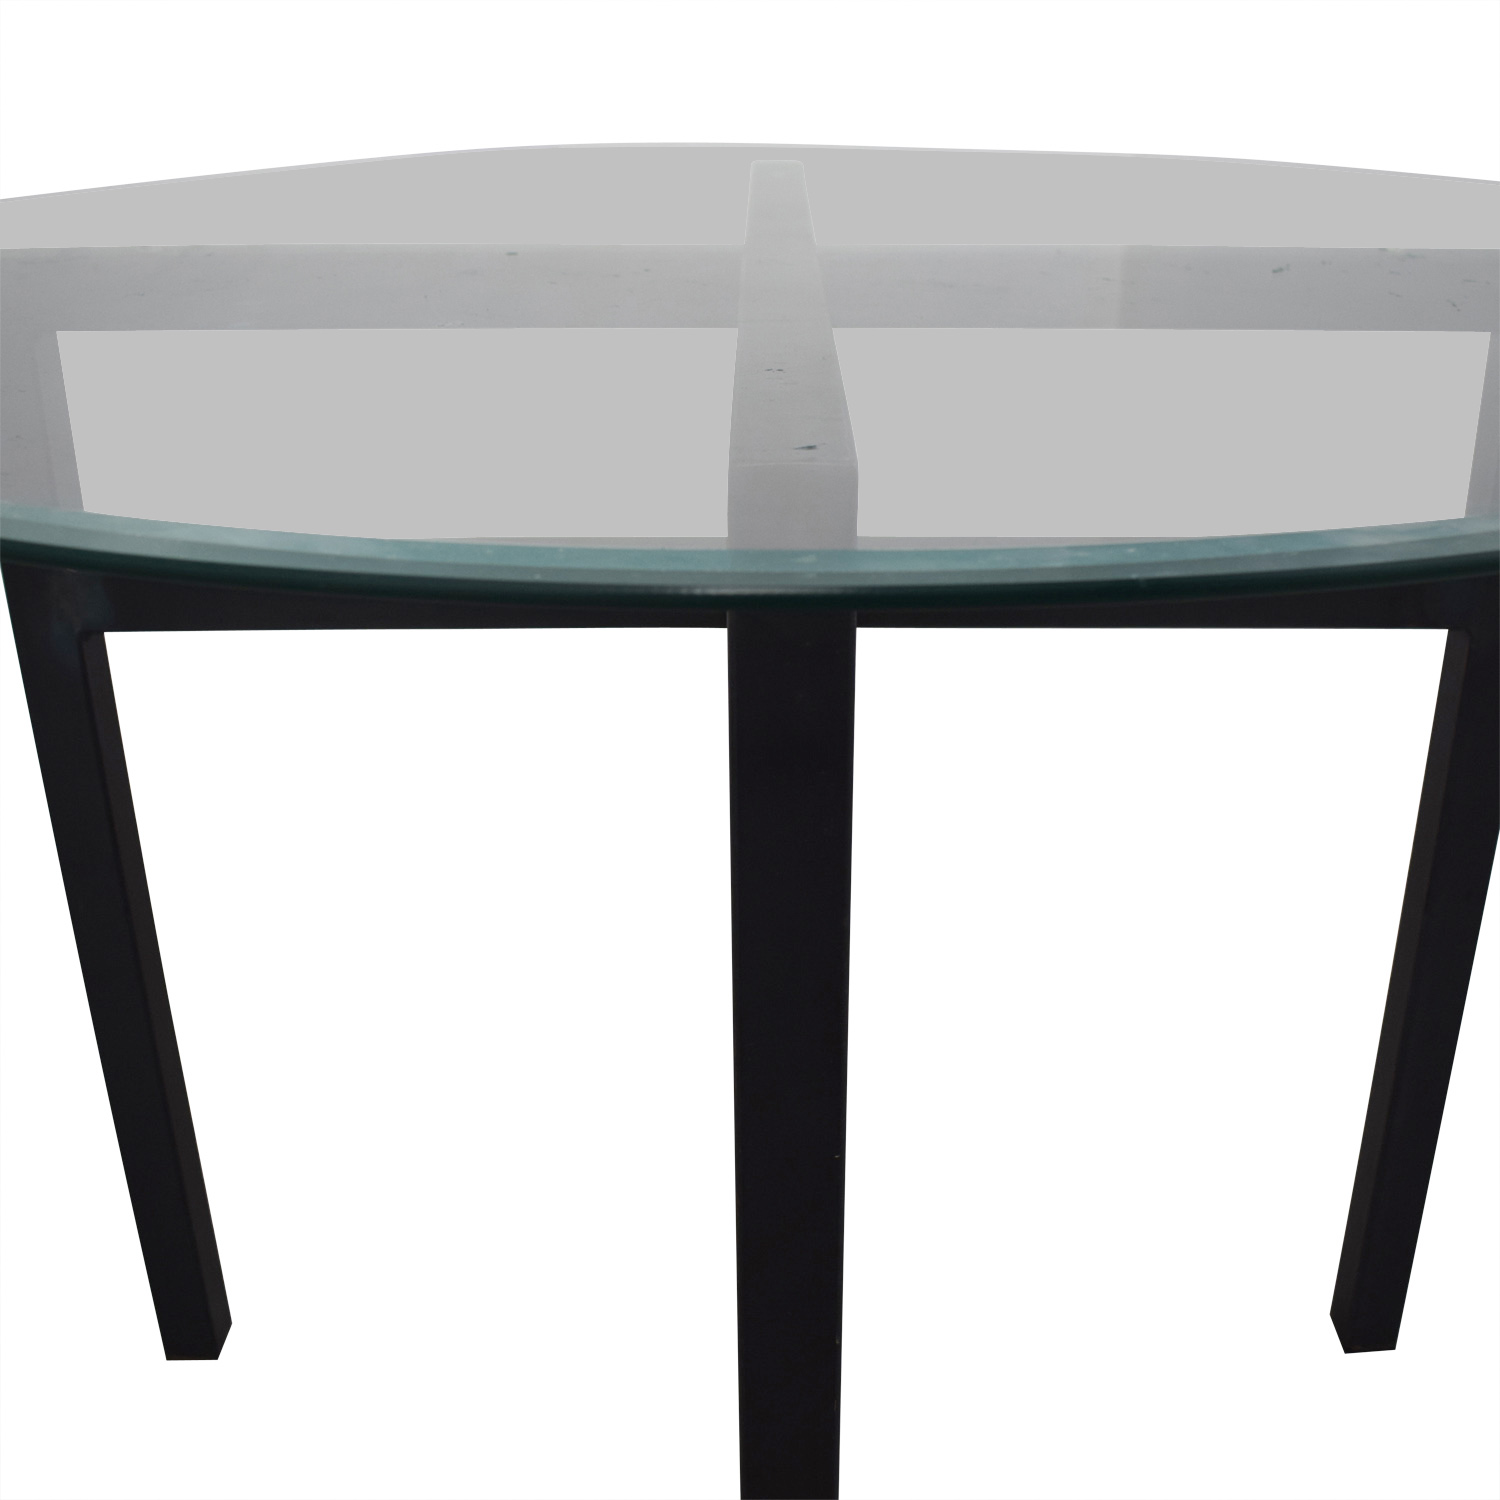 Round Glass Top Dining Table 74 Off Room Board Room Board Benson Round Glass Top Dining Table Tables